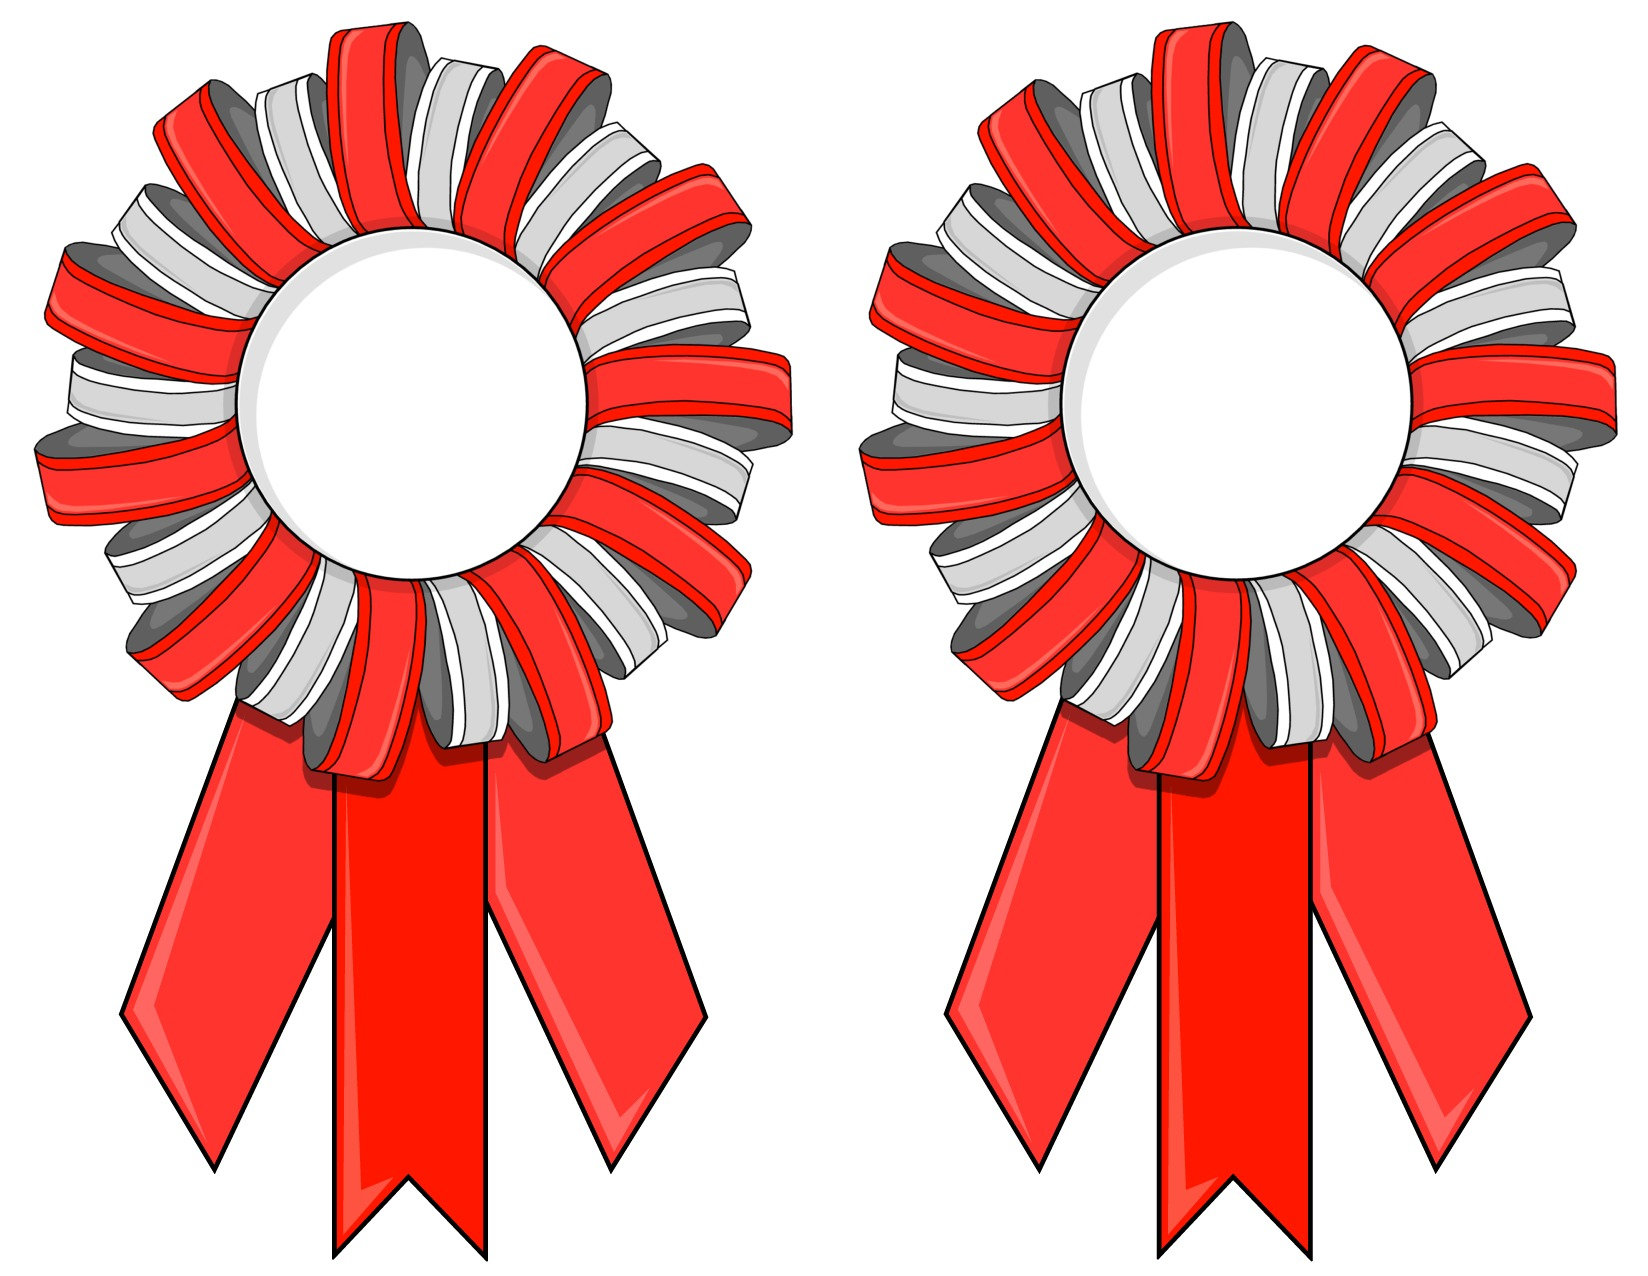 photograph relating to Printable Ribbon known as Printable Contest Ribbons or Match Ribbons